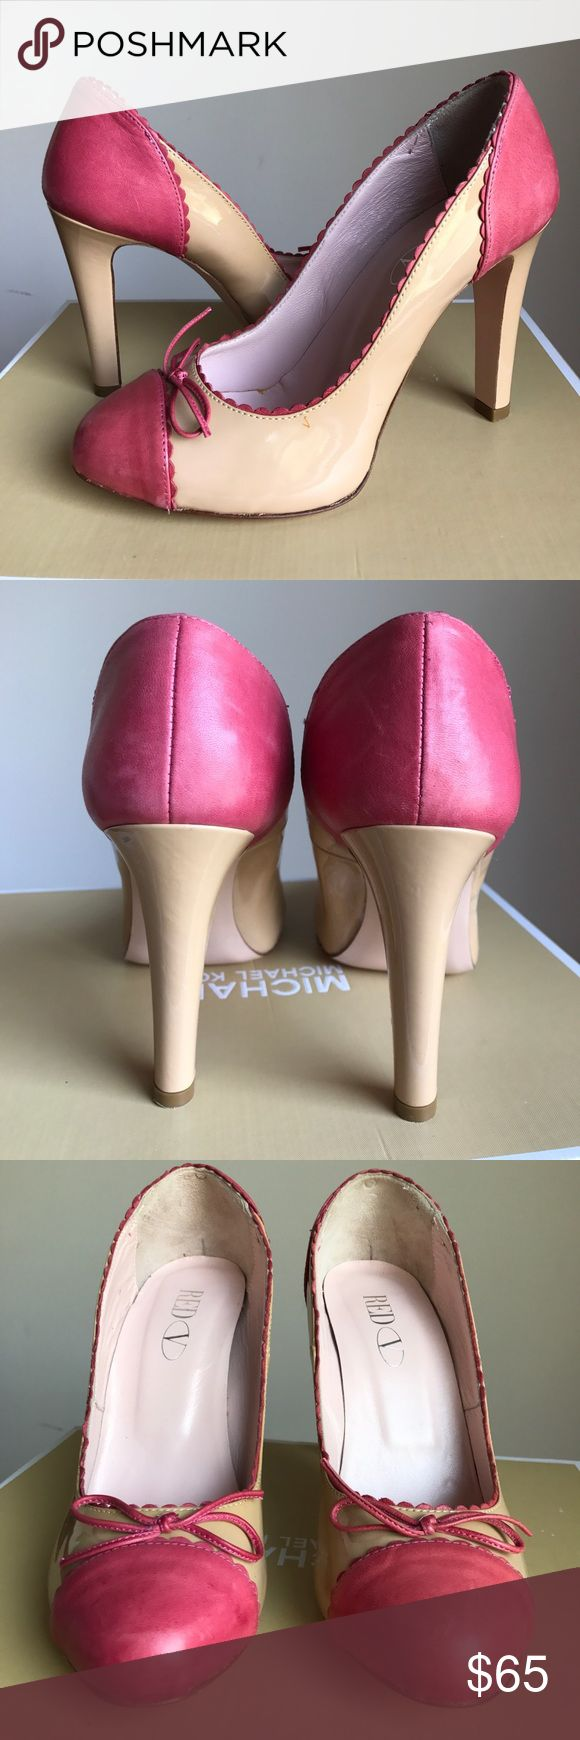 RED Valentino Tan & Pink Heels Size 38. Exquisite RED Valentino Patent Leather Heels, with just a few minor flaws, as shown in last two photos. I have only worn these once, and I'm a true size 7.5 and they fit perfectly. This is my second time listing them because I first listed them as a 7.5 instead of a 38. If you have any questions, please feel free to ask! 🌸 RED Valentino Shoes Heels